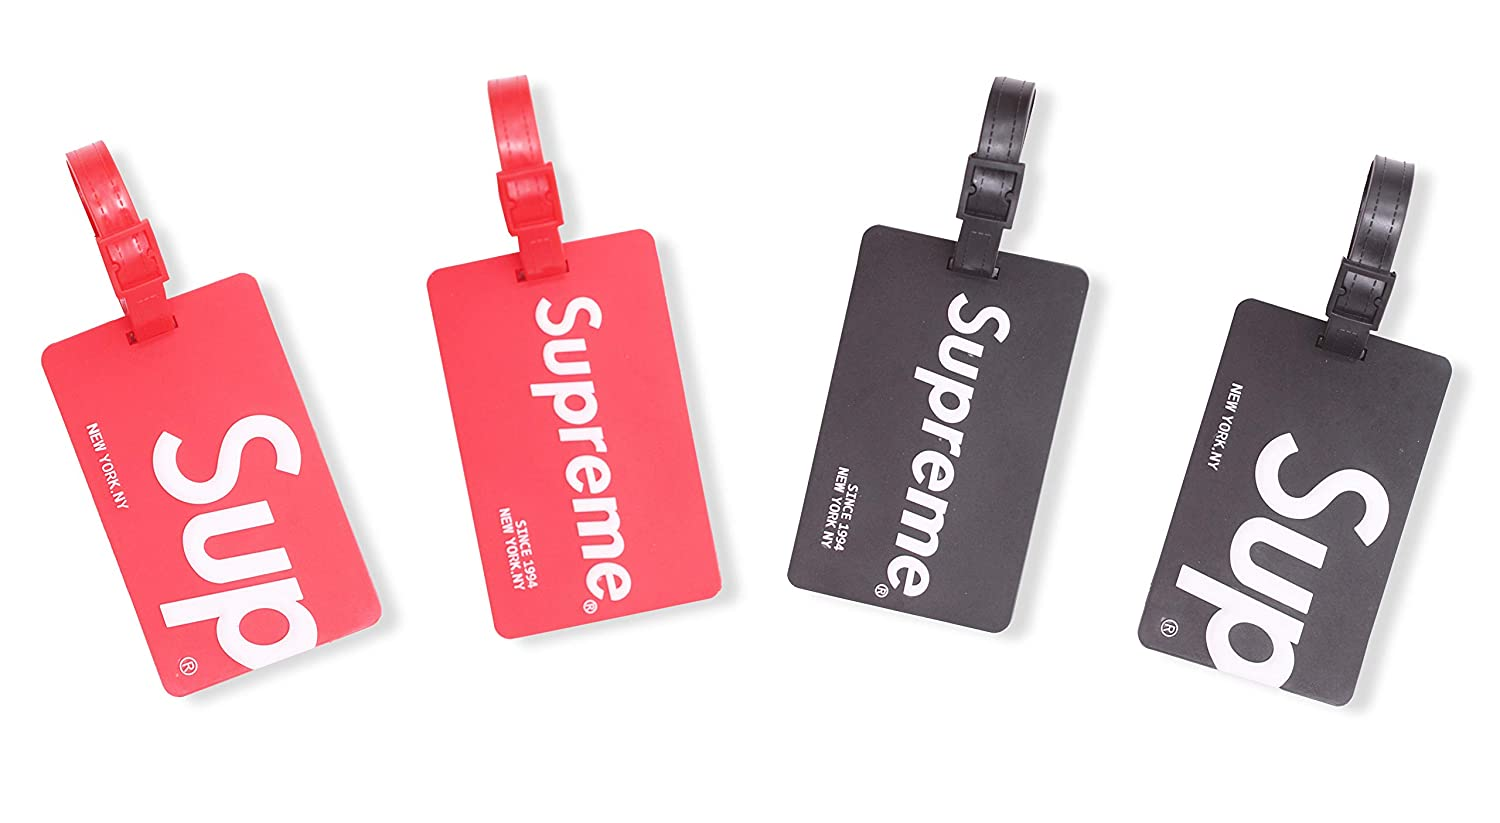 fe9f91a4149 Amazon.com  Finex Set of 4 - Supreme Travel Silicone Luggage Tags Bag Tag  Adjustable Strap  Office Products